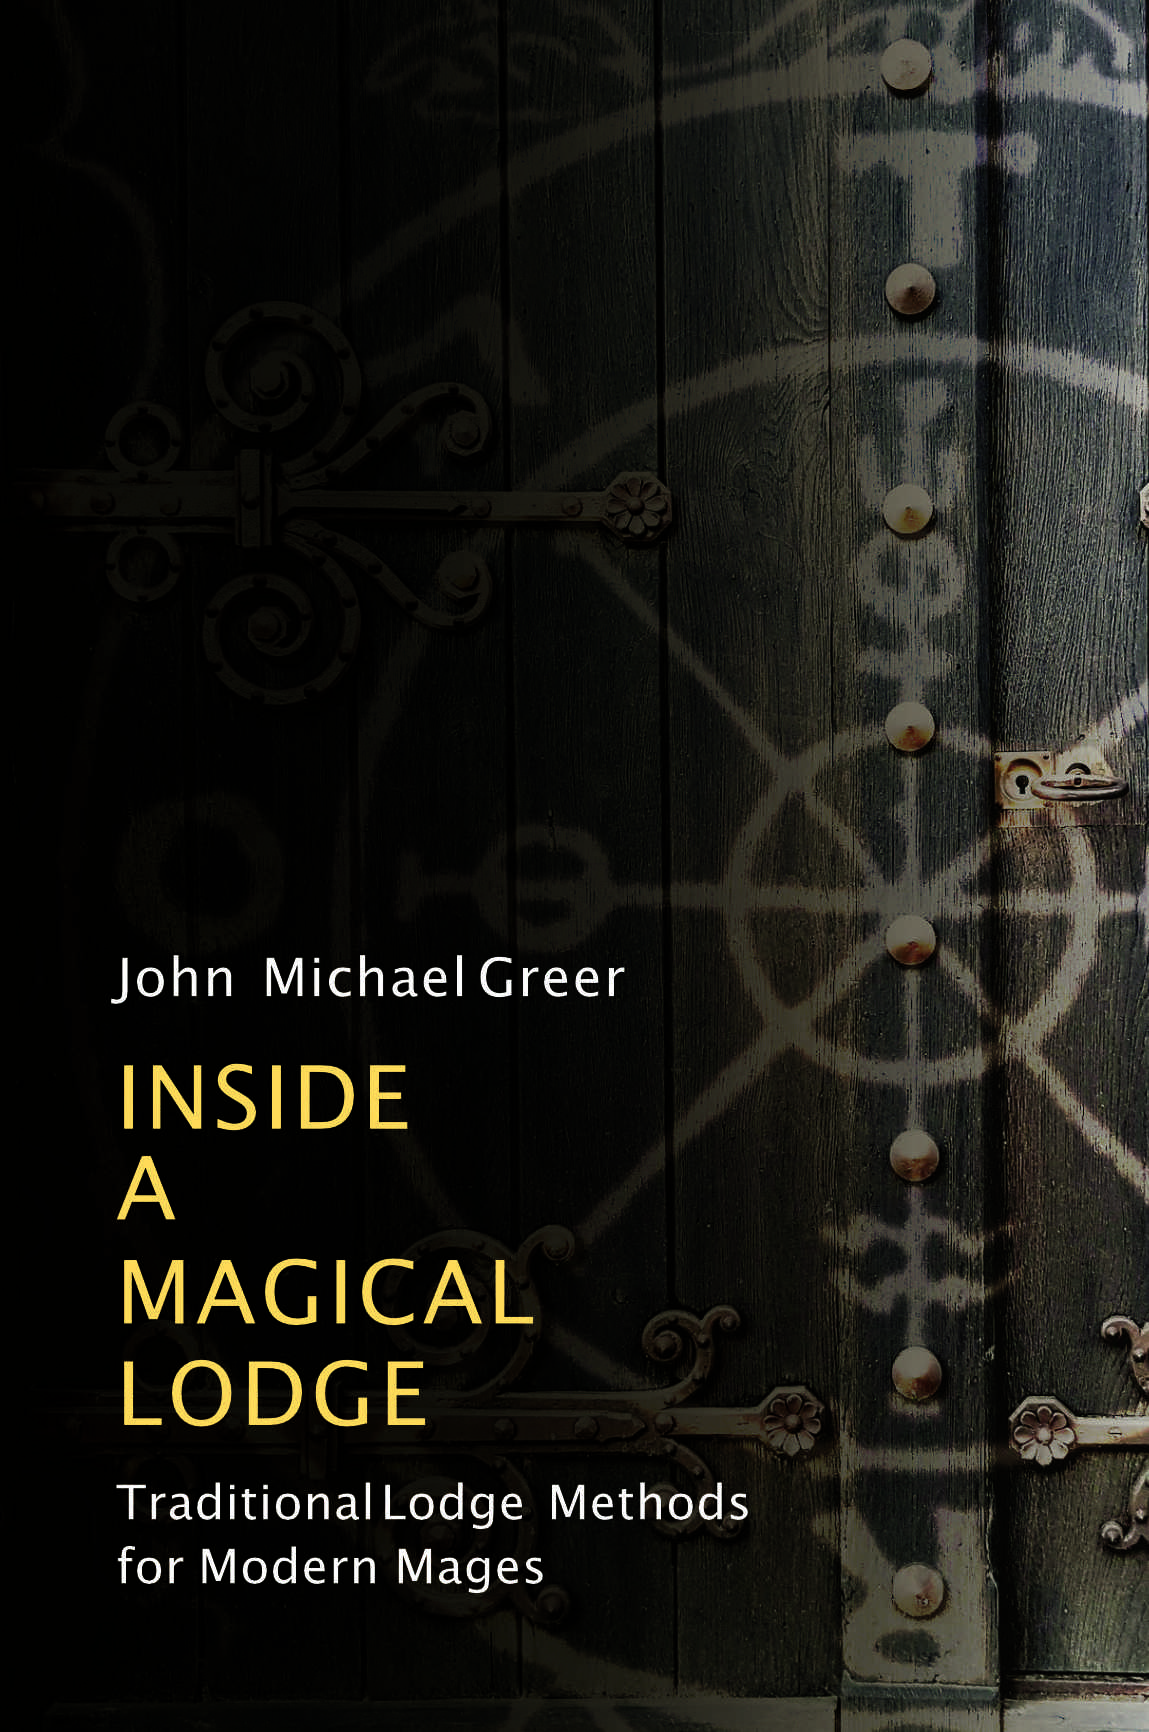 Inside a Magical Lodge: Traditional Lodge Methods for Modern Mages